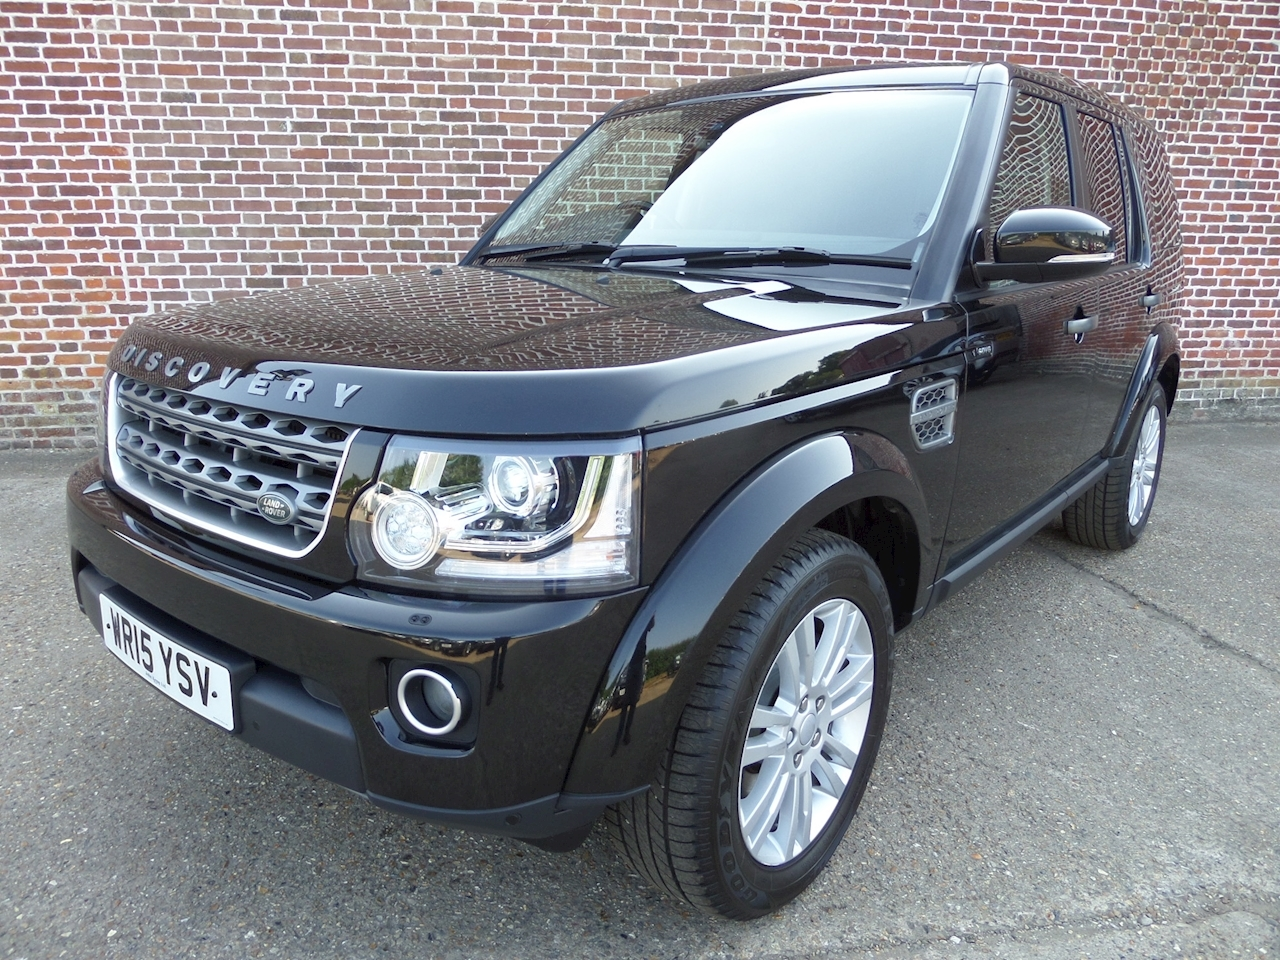 Land Rover Discovery Sdv6 Commercial Xs 3.0 5dr Light 4X4 Utility Automatic Diesel